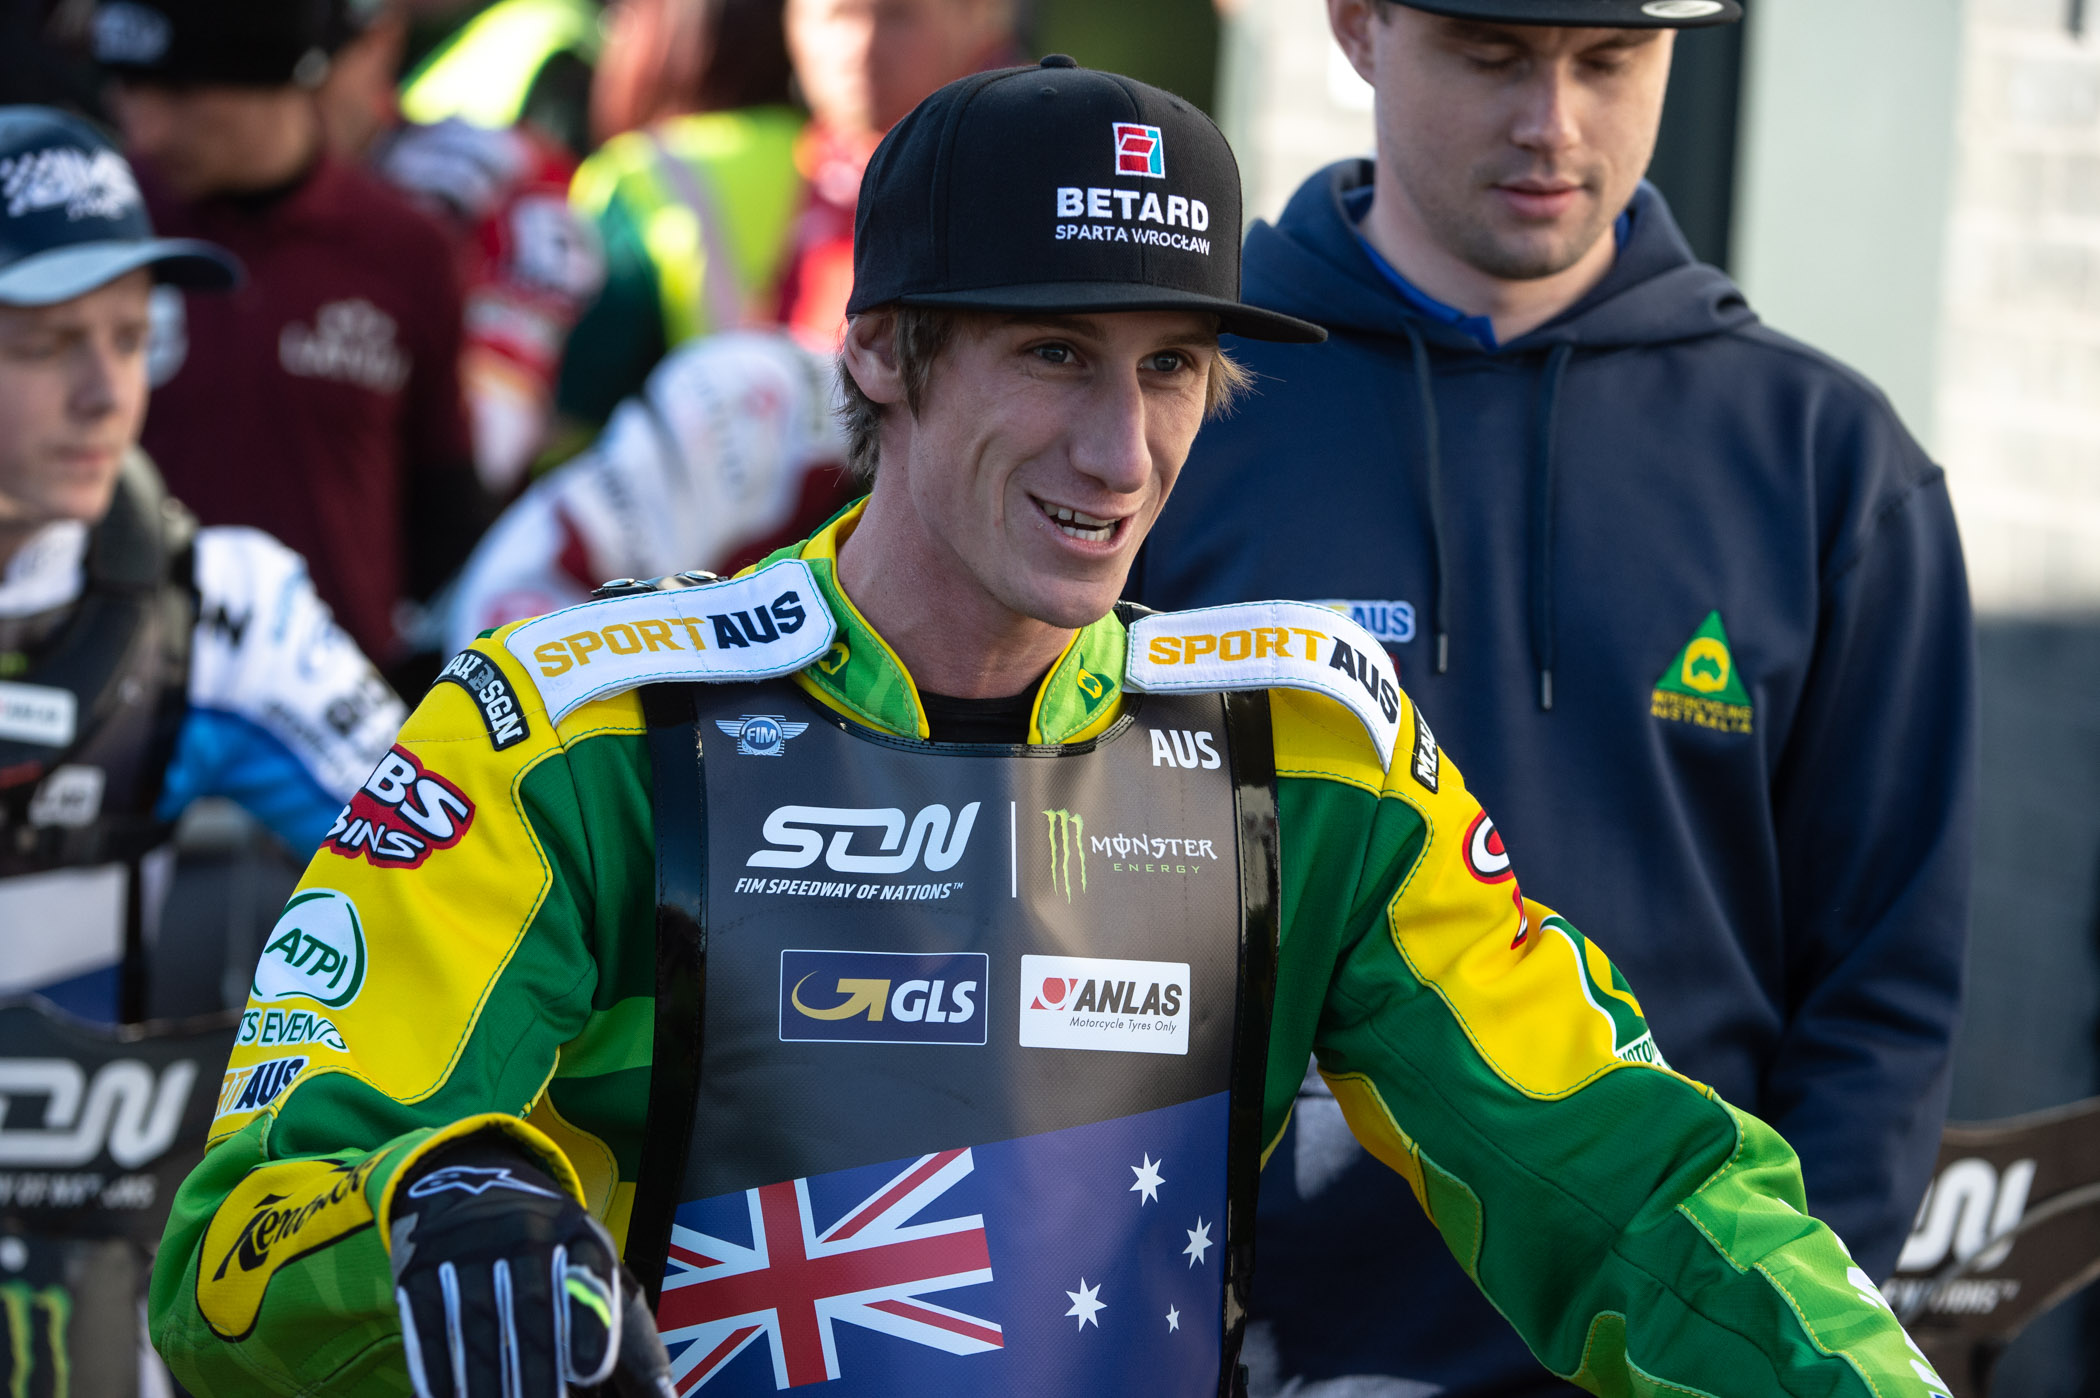 Max Fricke, representing Australia in the 2019 Monster Energy FIM Speedway of Nations